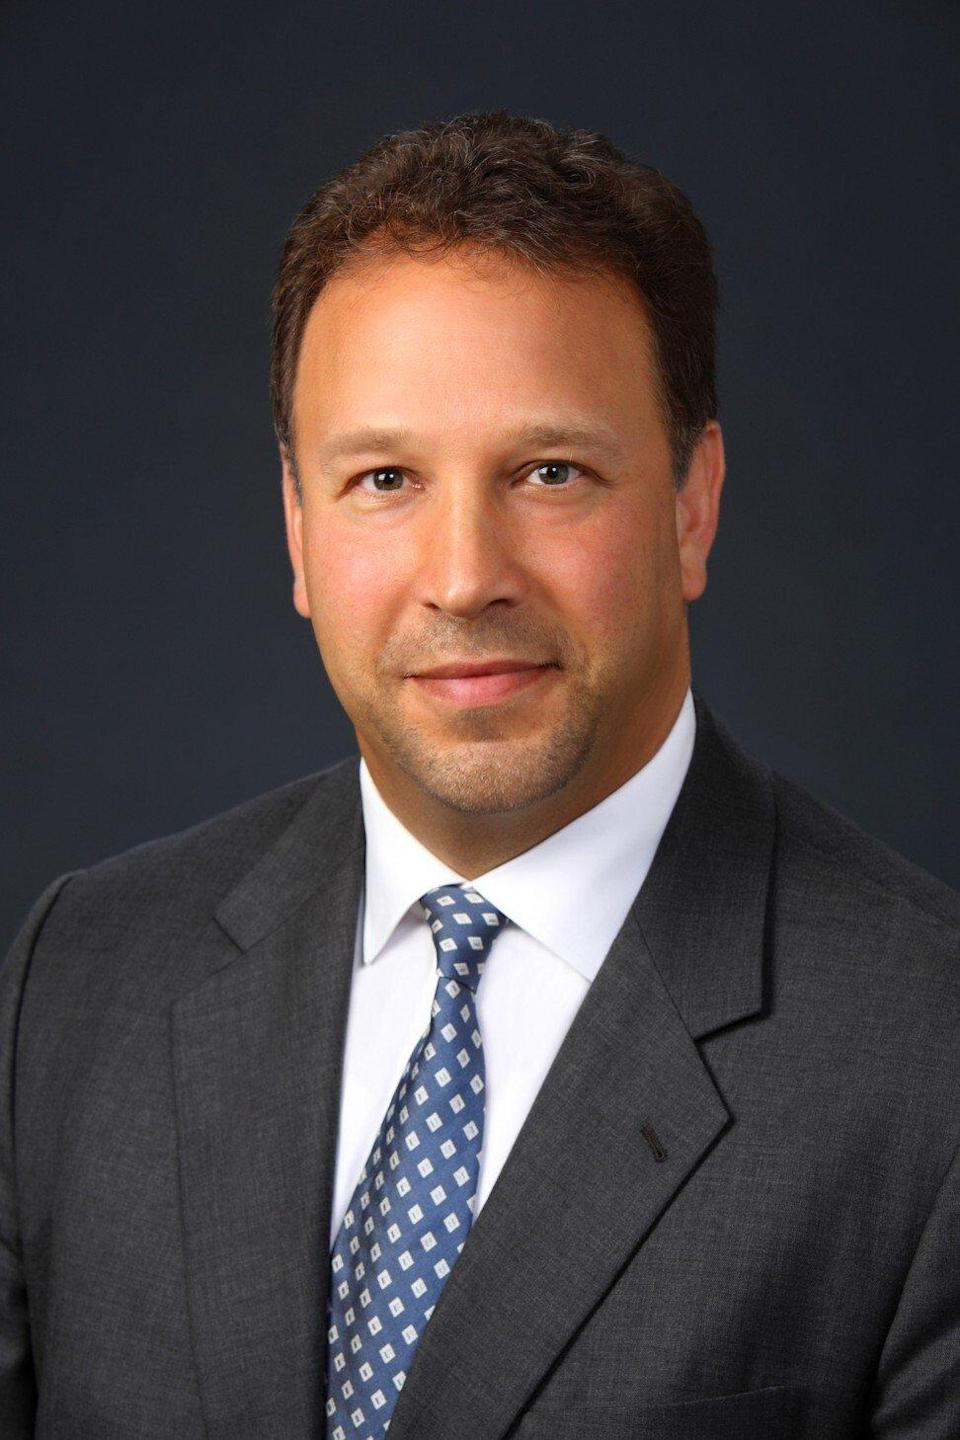 Matthew Ginsburg, Barclay Capital's former managing director and head of investment banking, Asia-Pacific. Photo: Barclays Capital